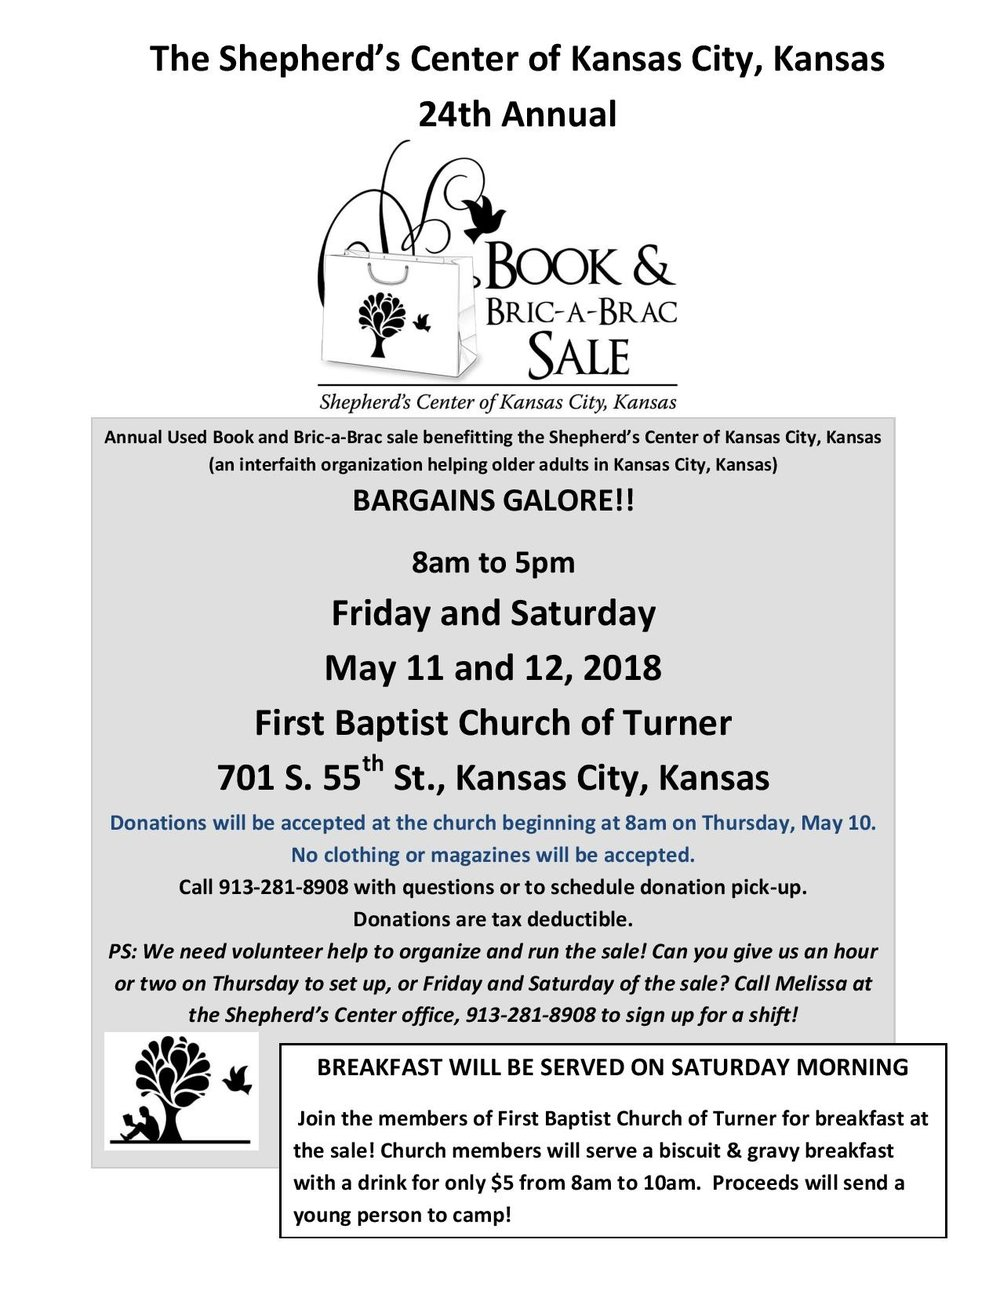 Annual+Bric-a-Brac+Sale_Shepherd's+Center+of+Kansas+City,+Kansas.jpg